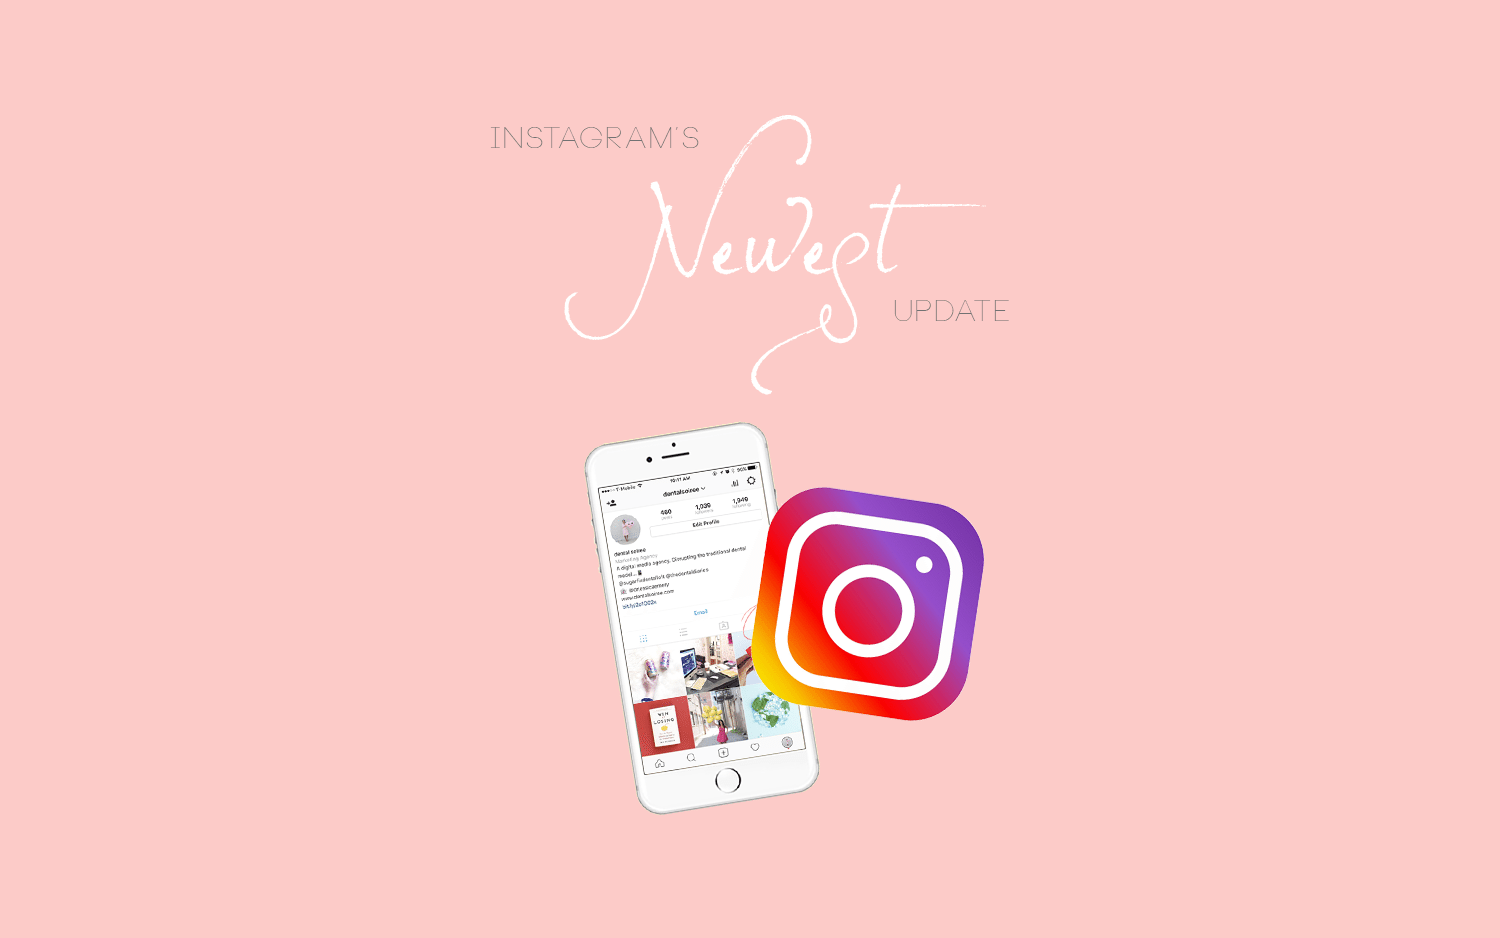 Instagram's Newest Update